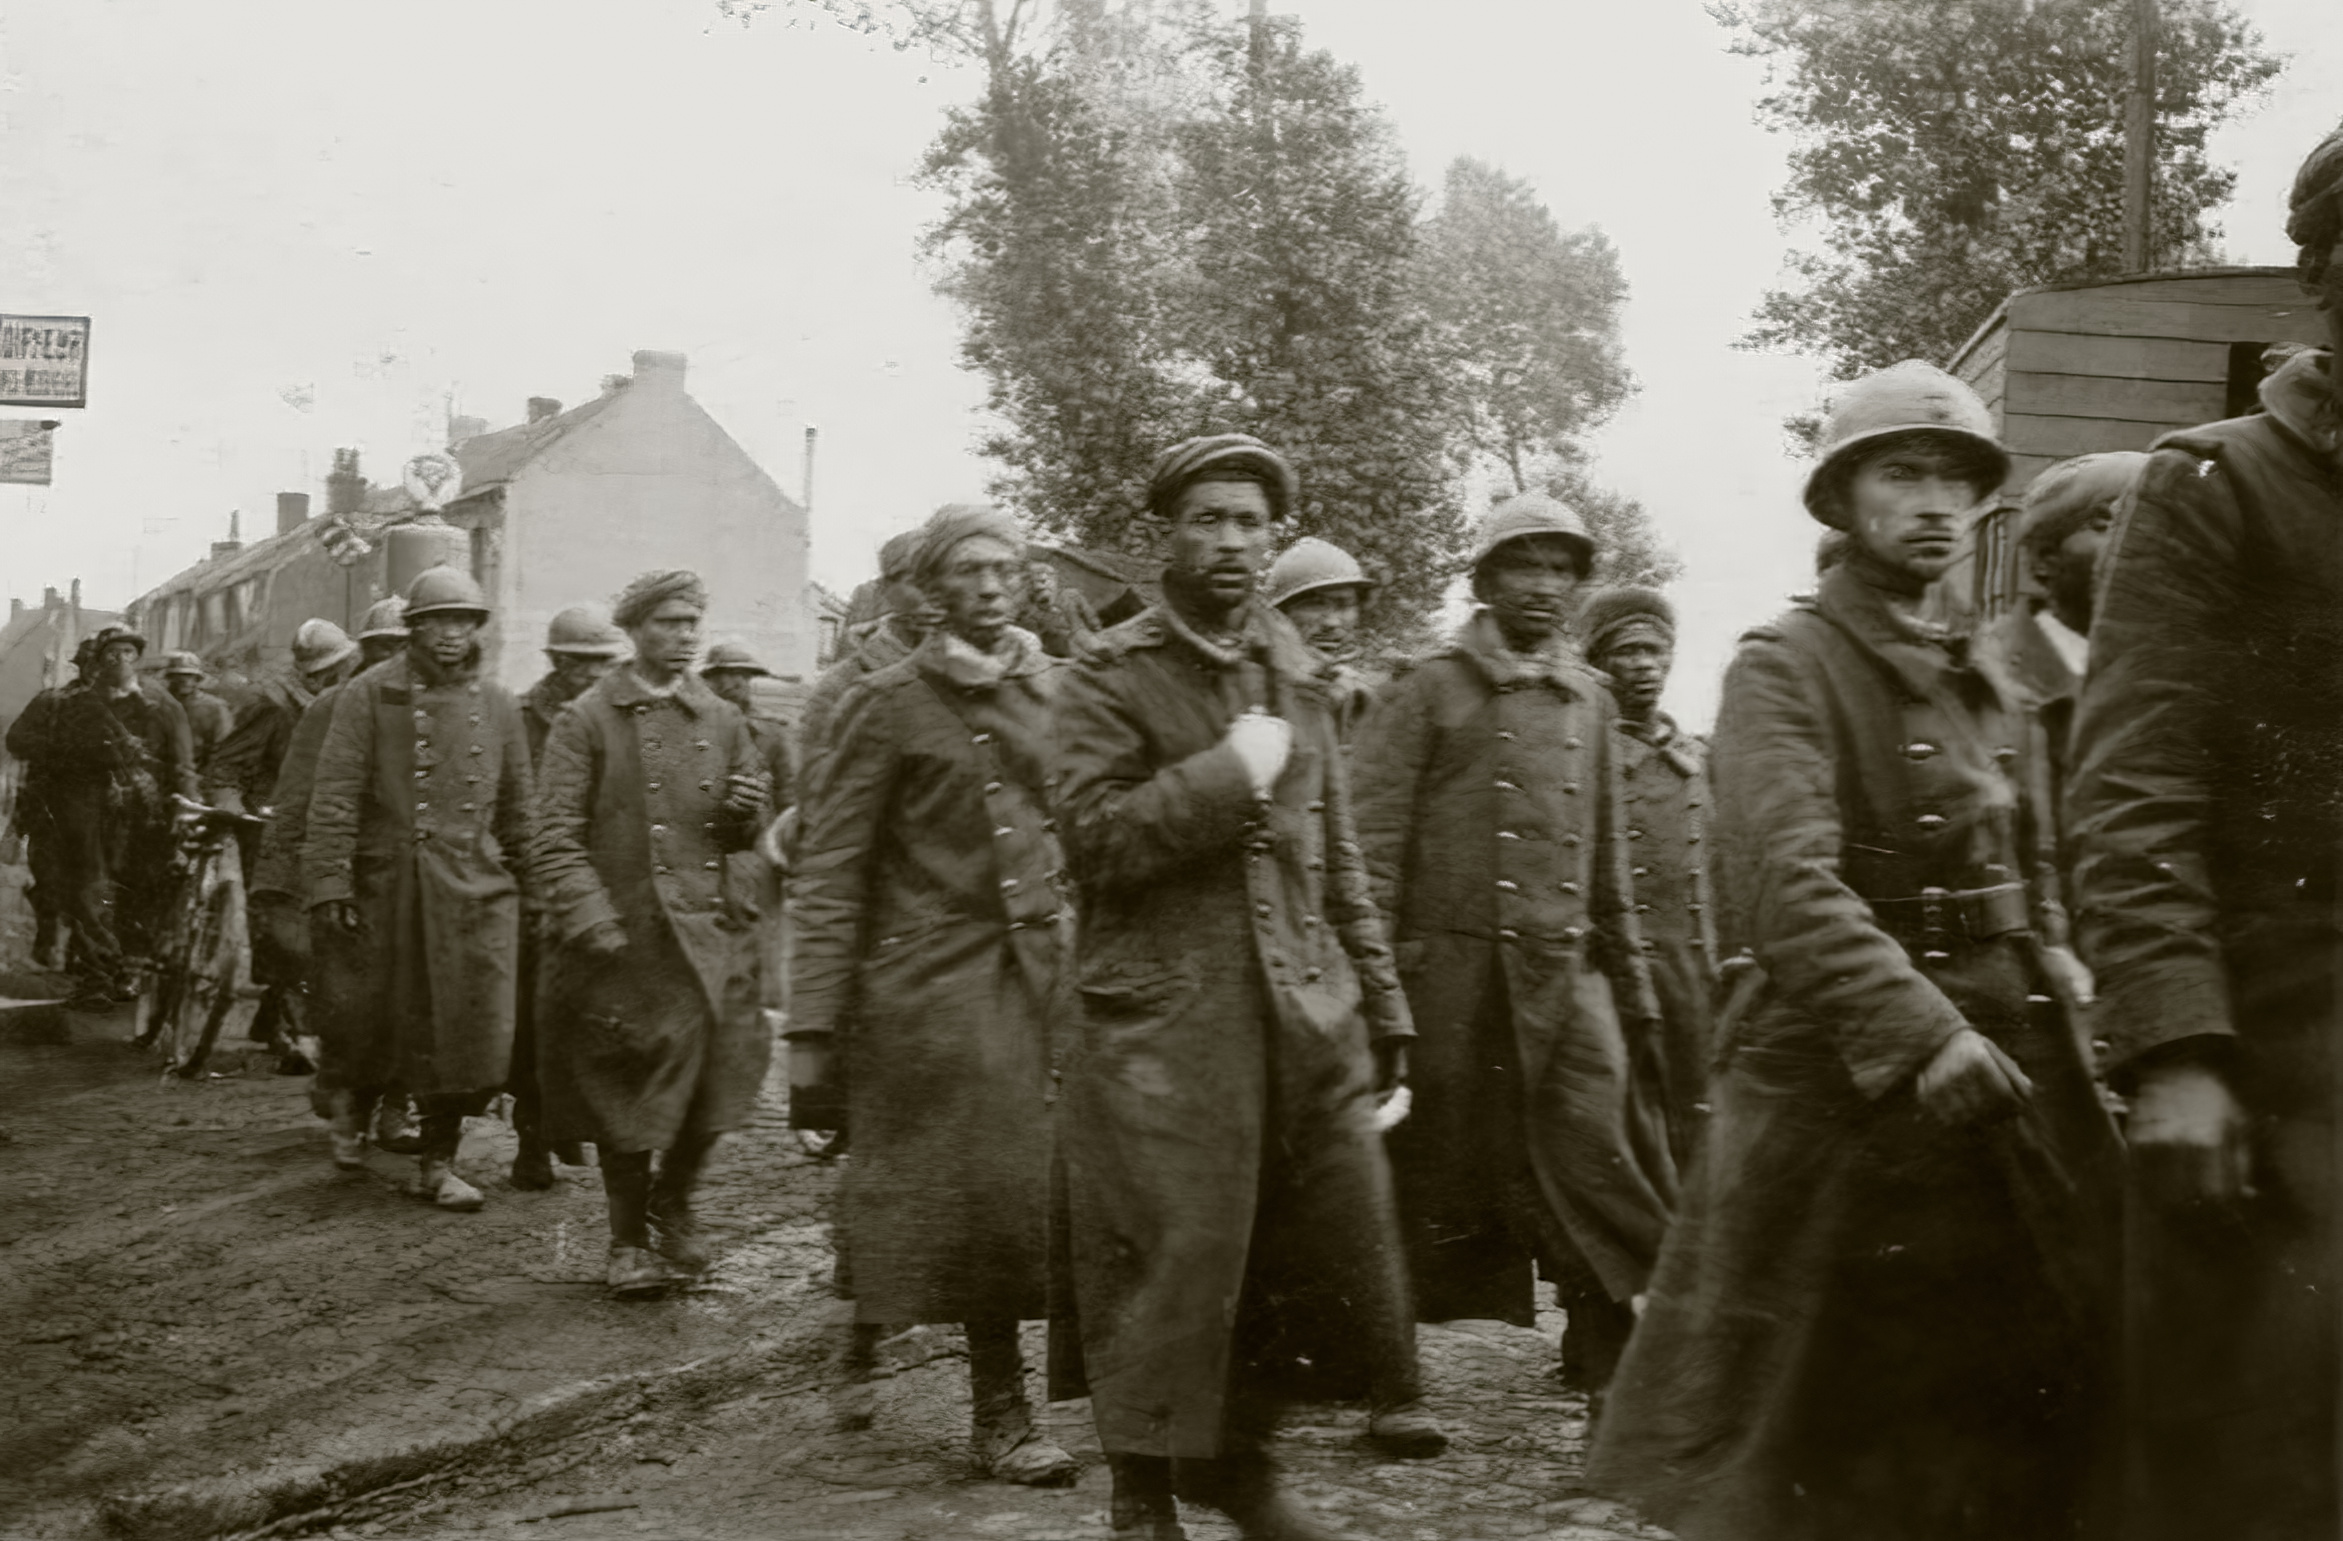 Column of French POWs being marched towards internment June 1940 ebay 02